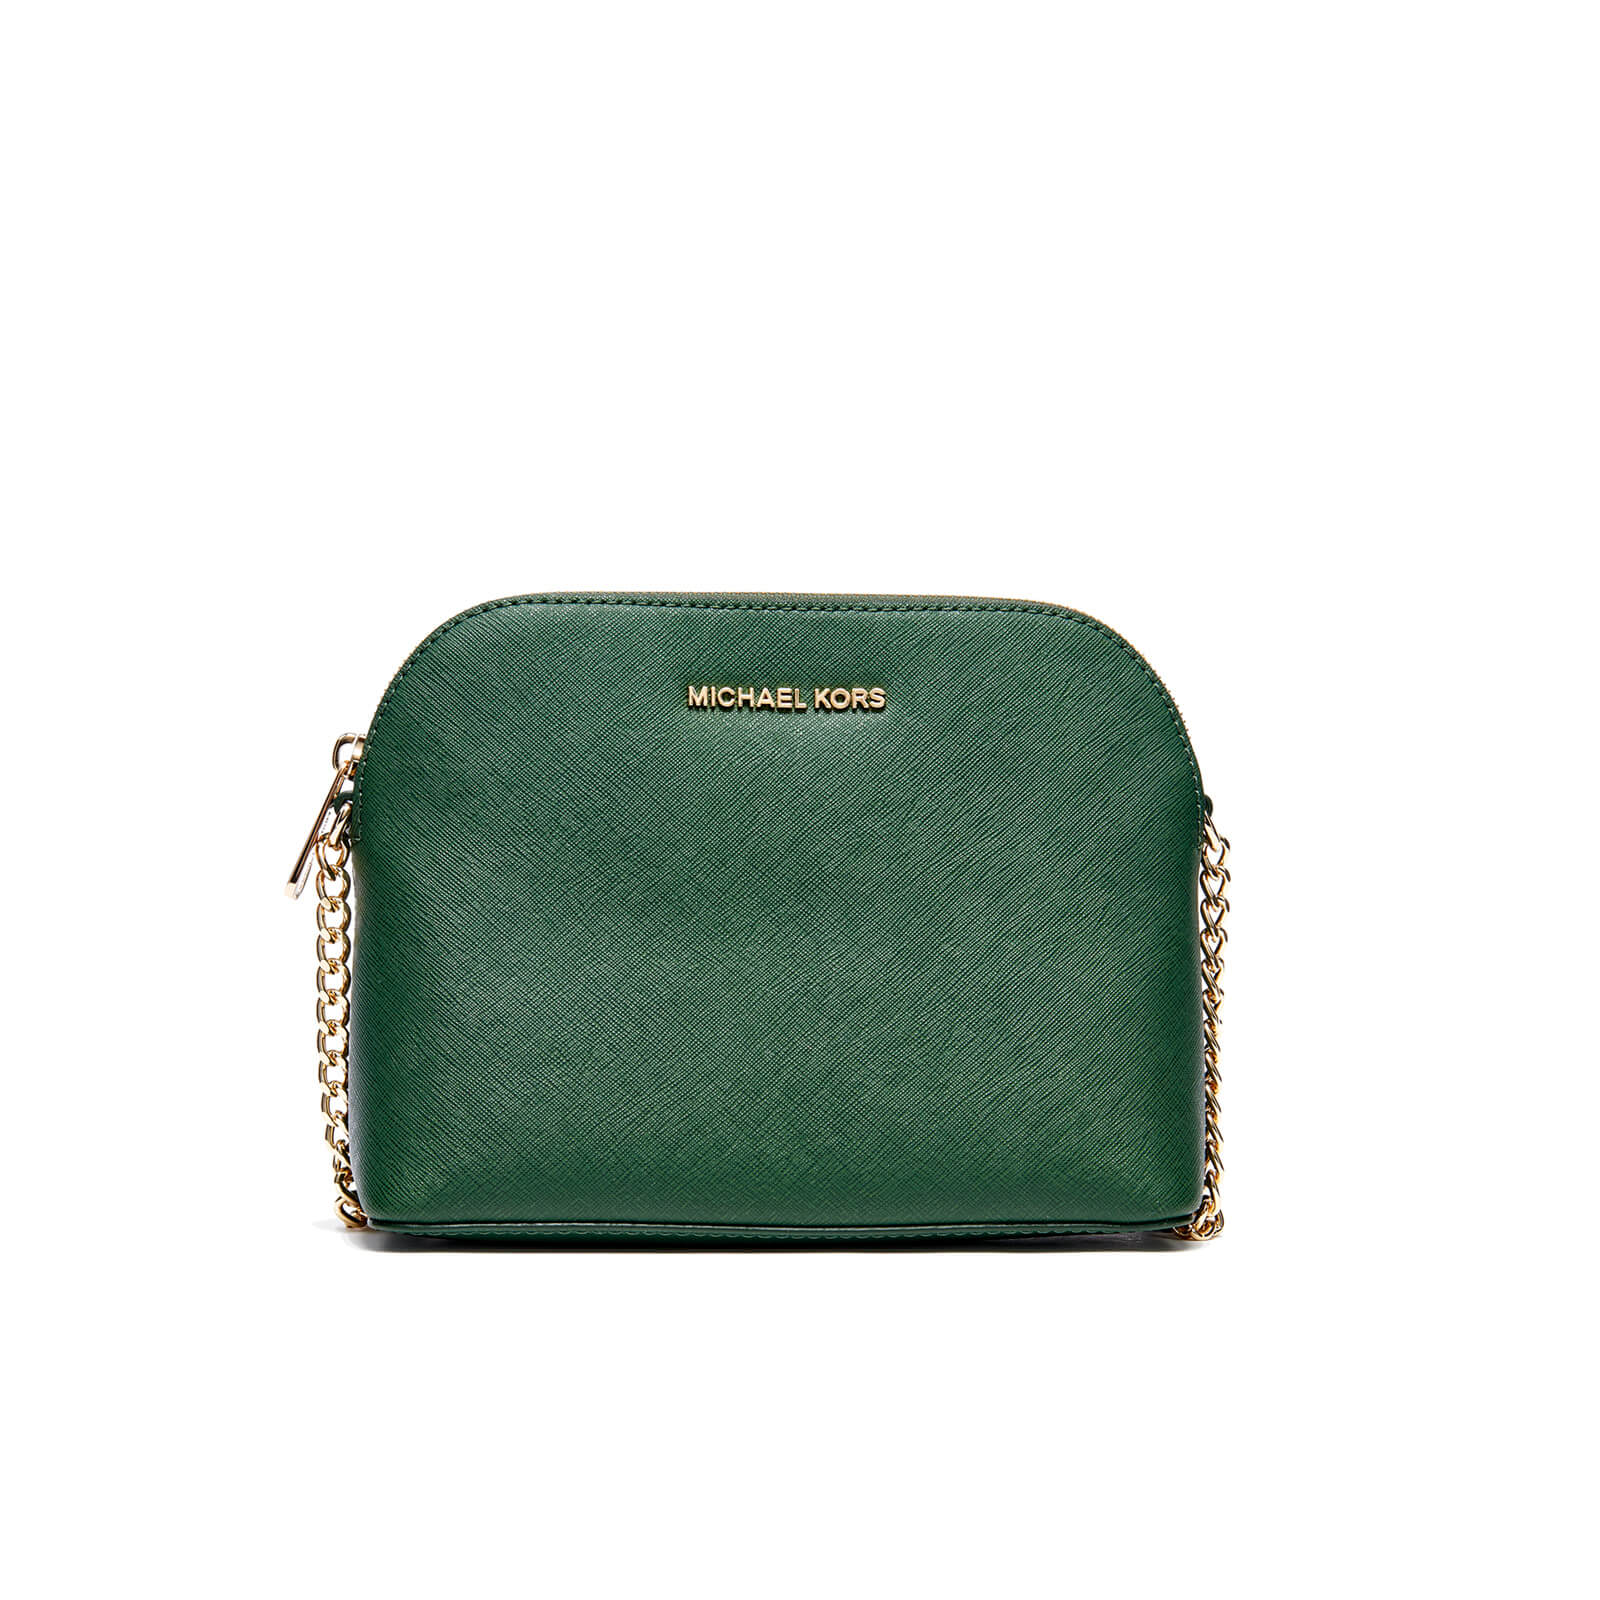 f36815afec98 MICHAEL MICHAEL KORS Women's Cindy Large Dome Cross Body Bag - Moss - Free  UK Delivery over £50